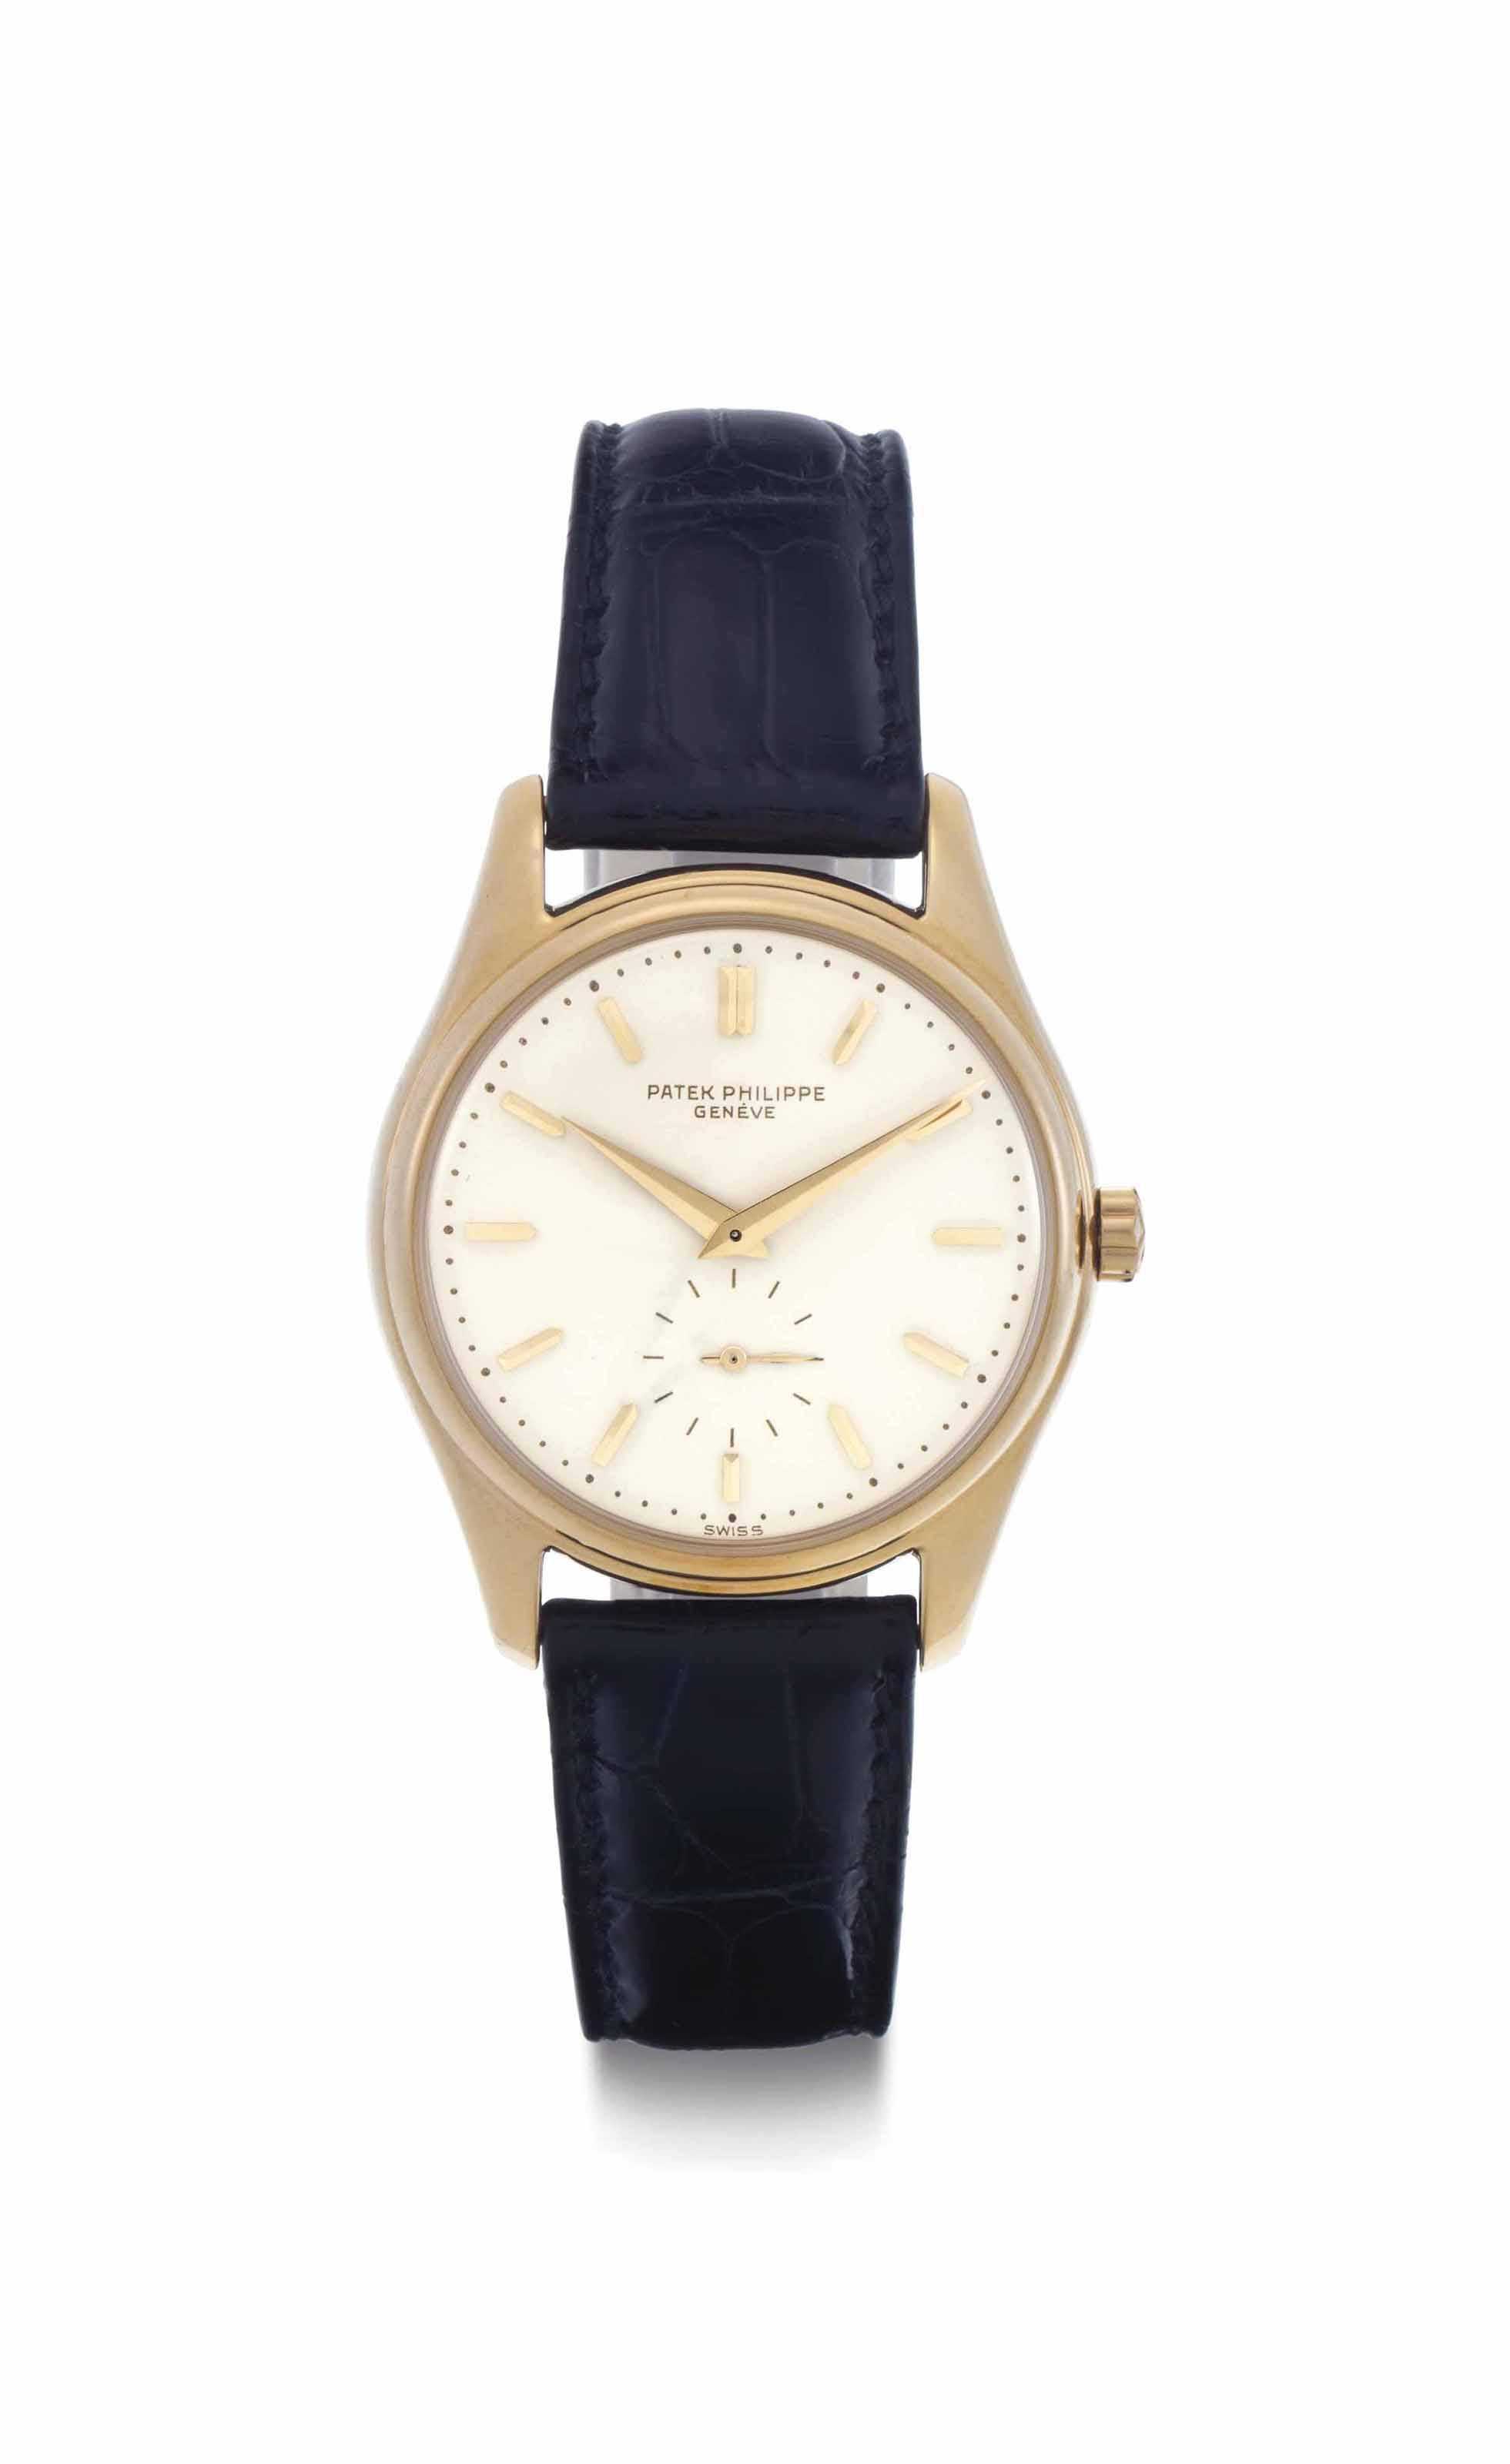 Patek philippe a fine 18k gold automatic wristwatch with enamel dial signed patek philippe for Patek philippe geneve